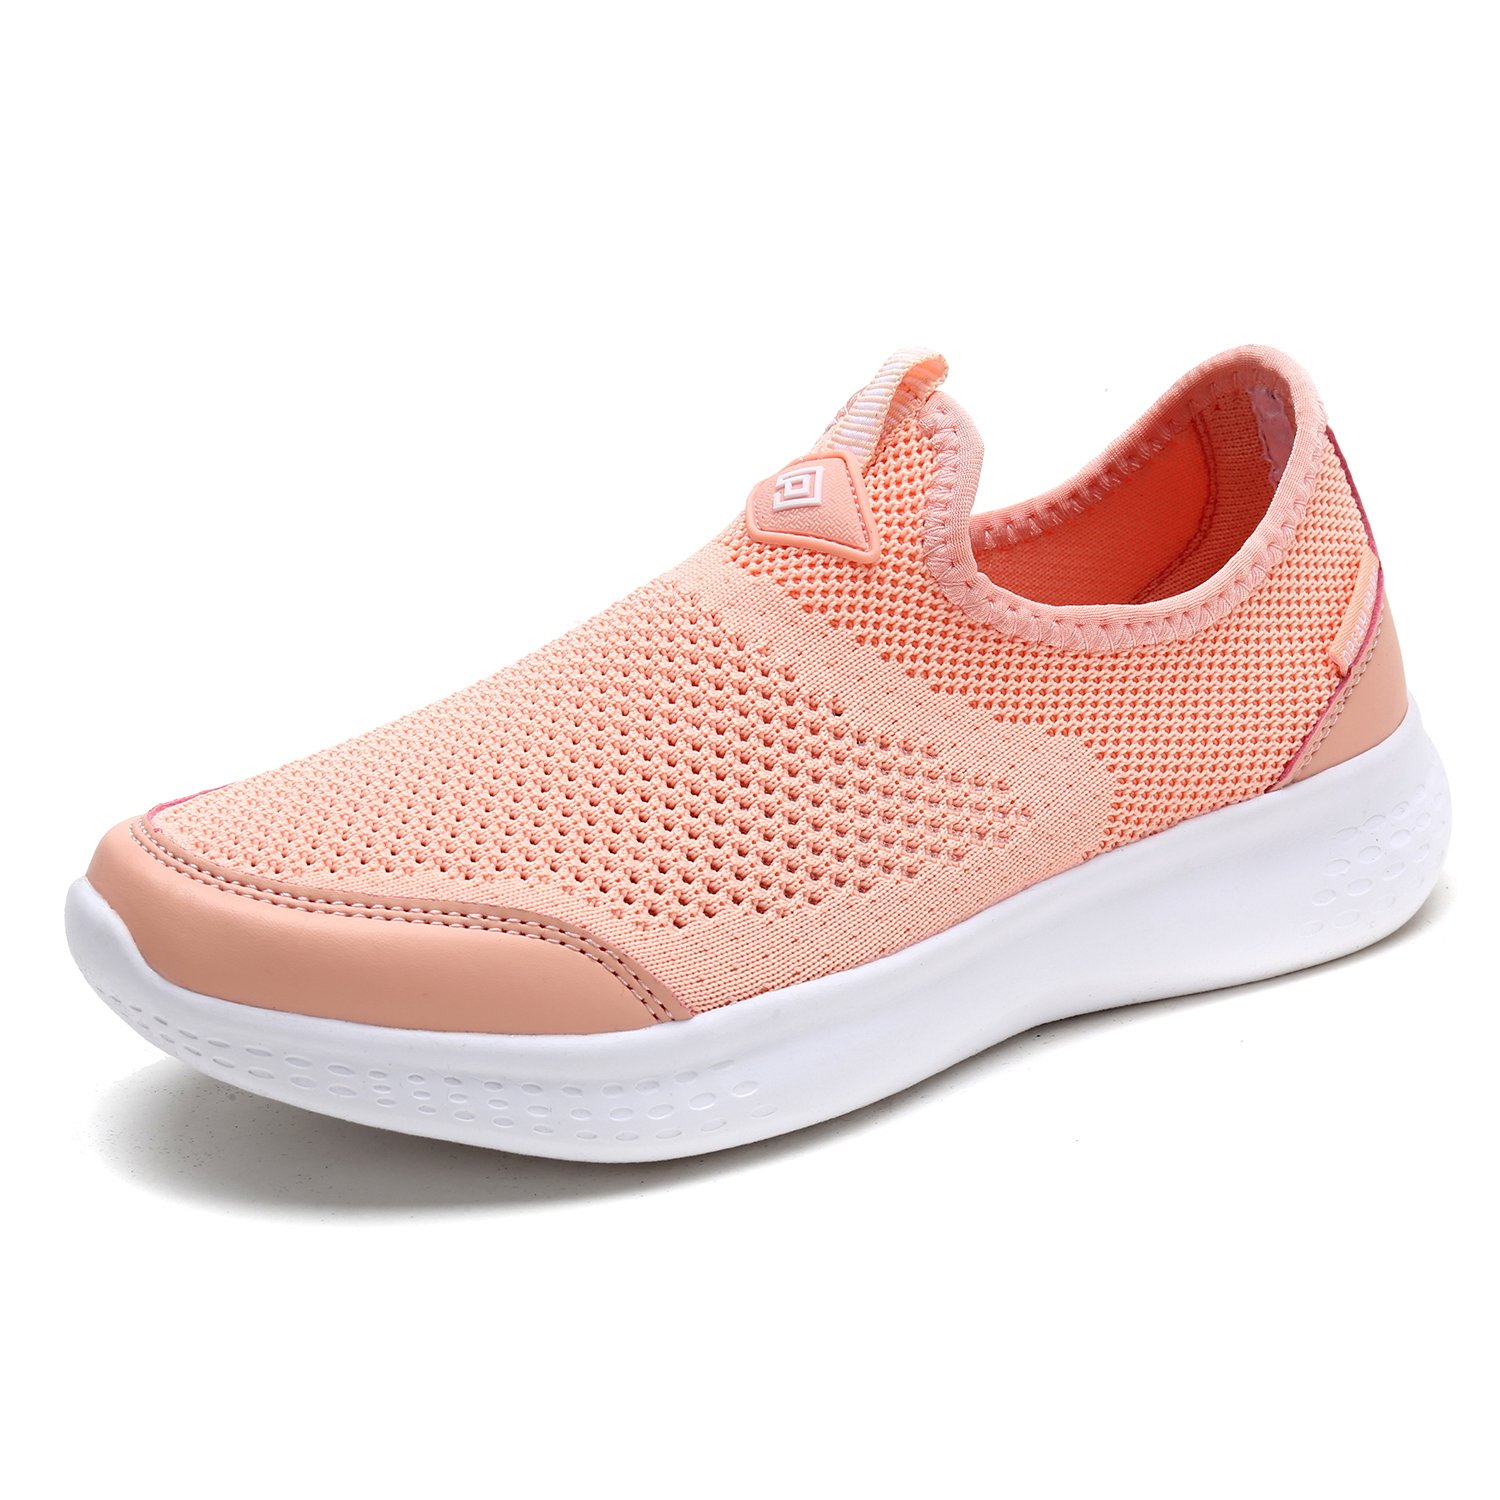 DREAM PAIRS Women's C0189_W Shell Pink Fashion Running Shoes Sneakers Size 8.5 M US